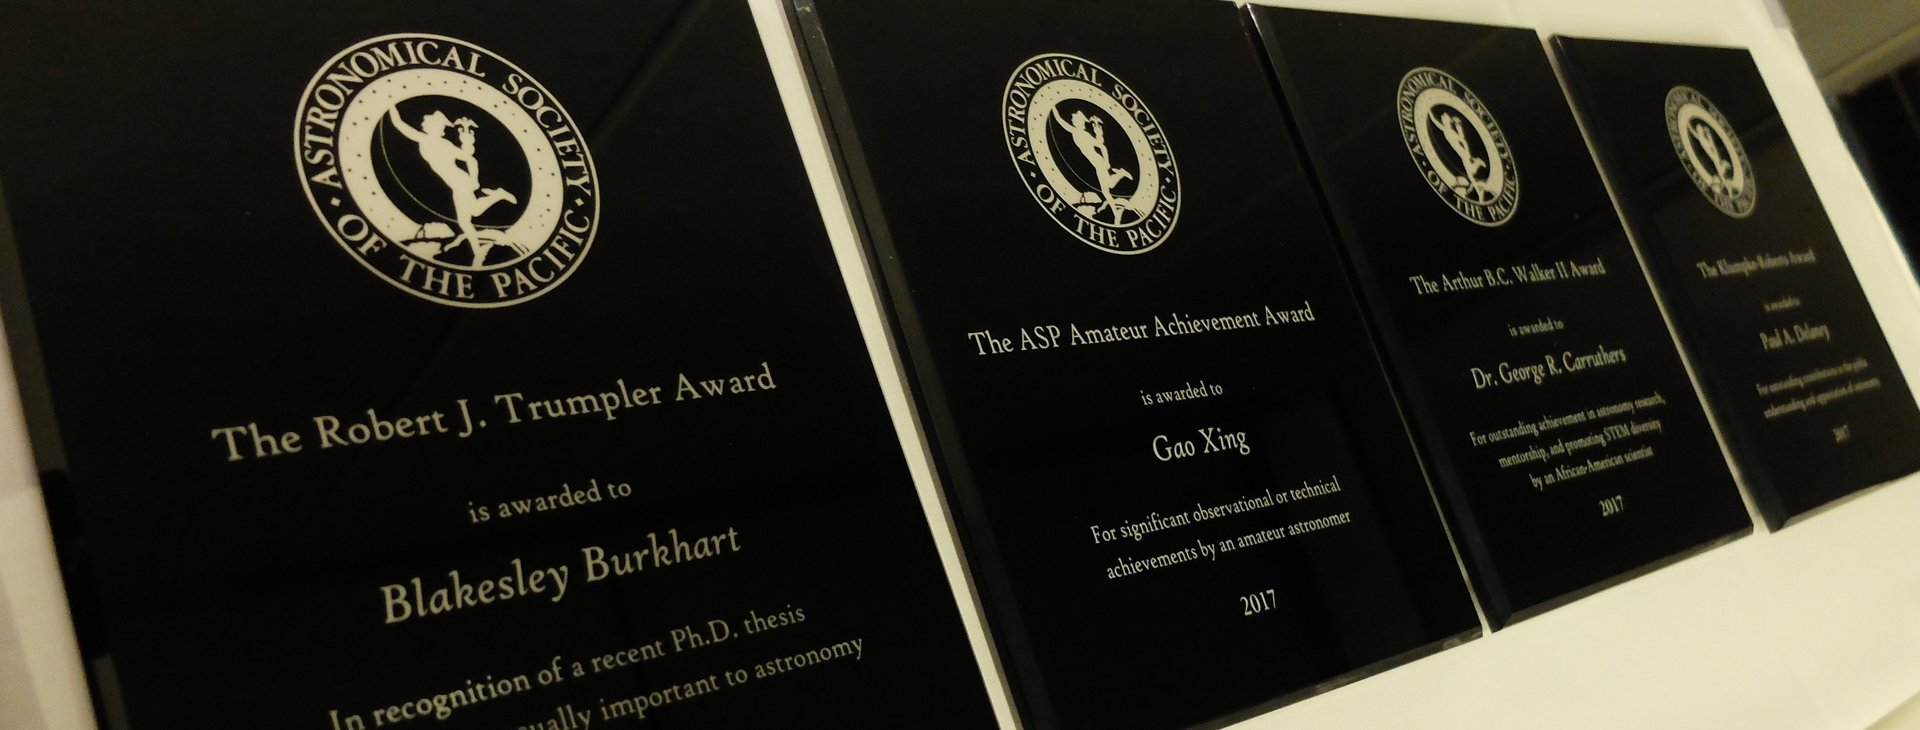 The Astronomical Society of the Pacific Announces Its 2018 Award Recipients for Astronomy Research and Education